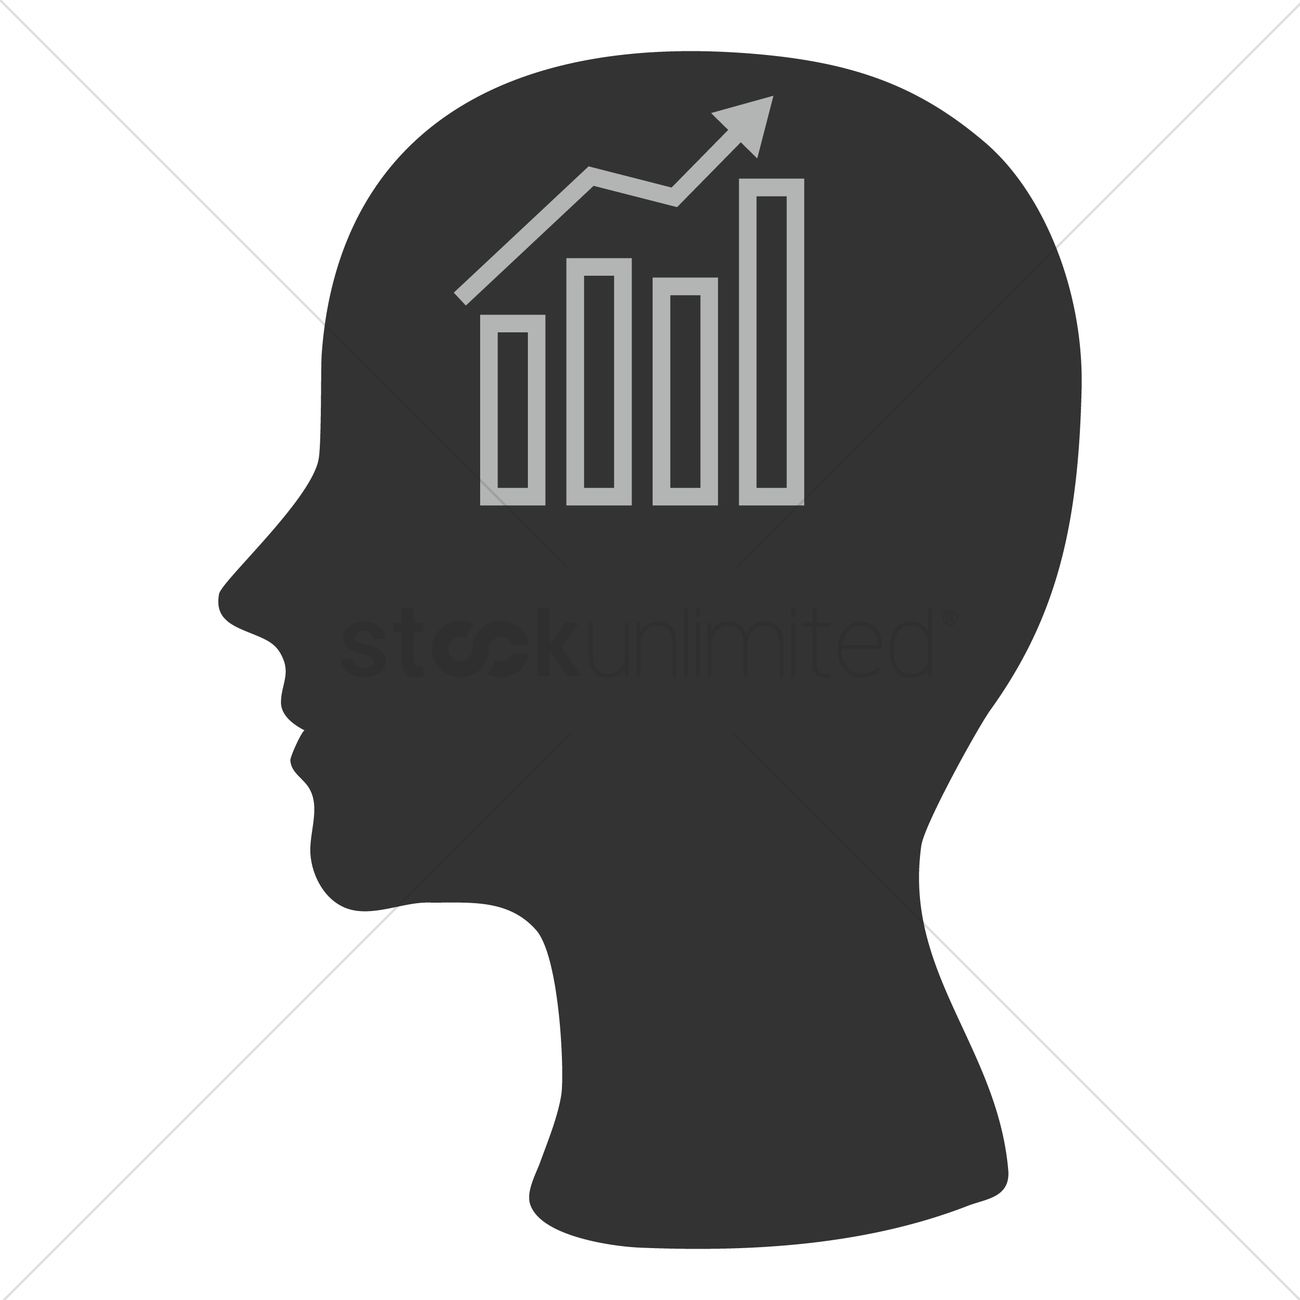 1300x1300 Human Head Silhouette With Business Growth Graph Vector Image